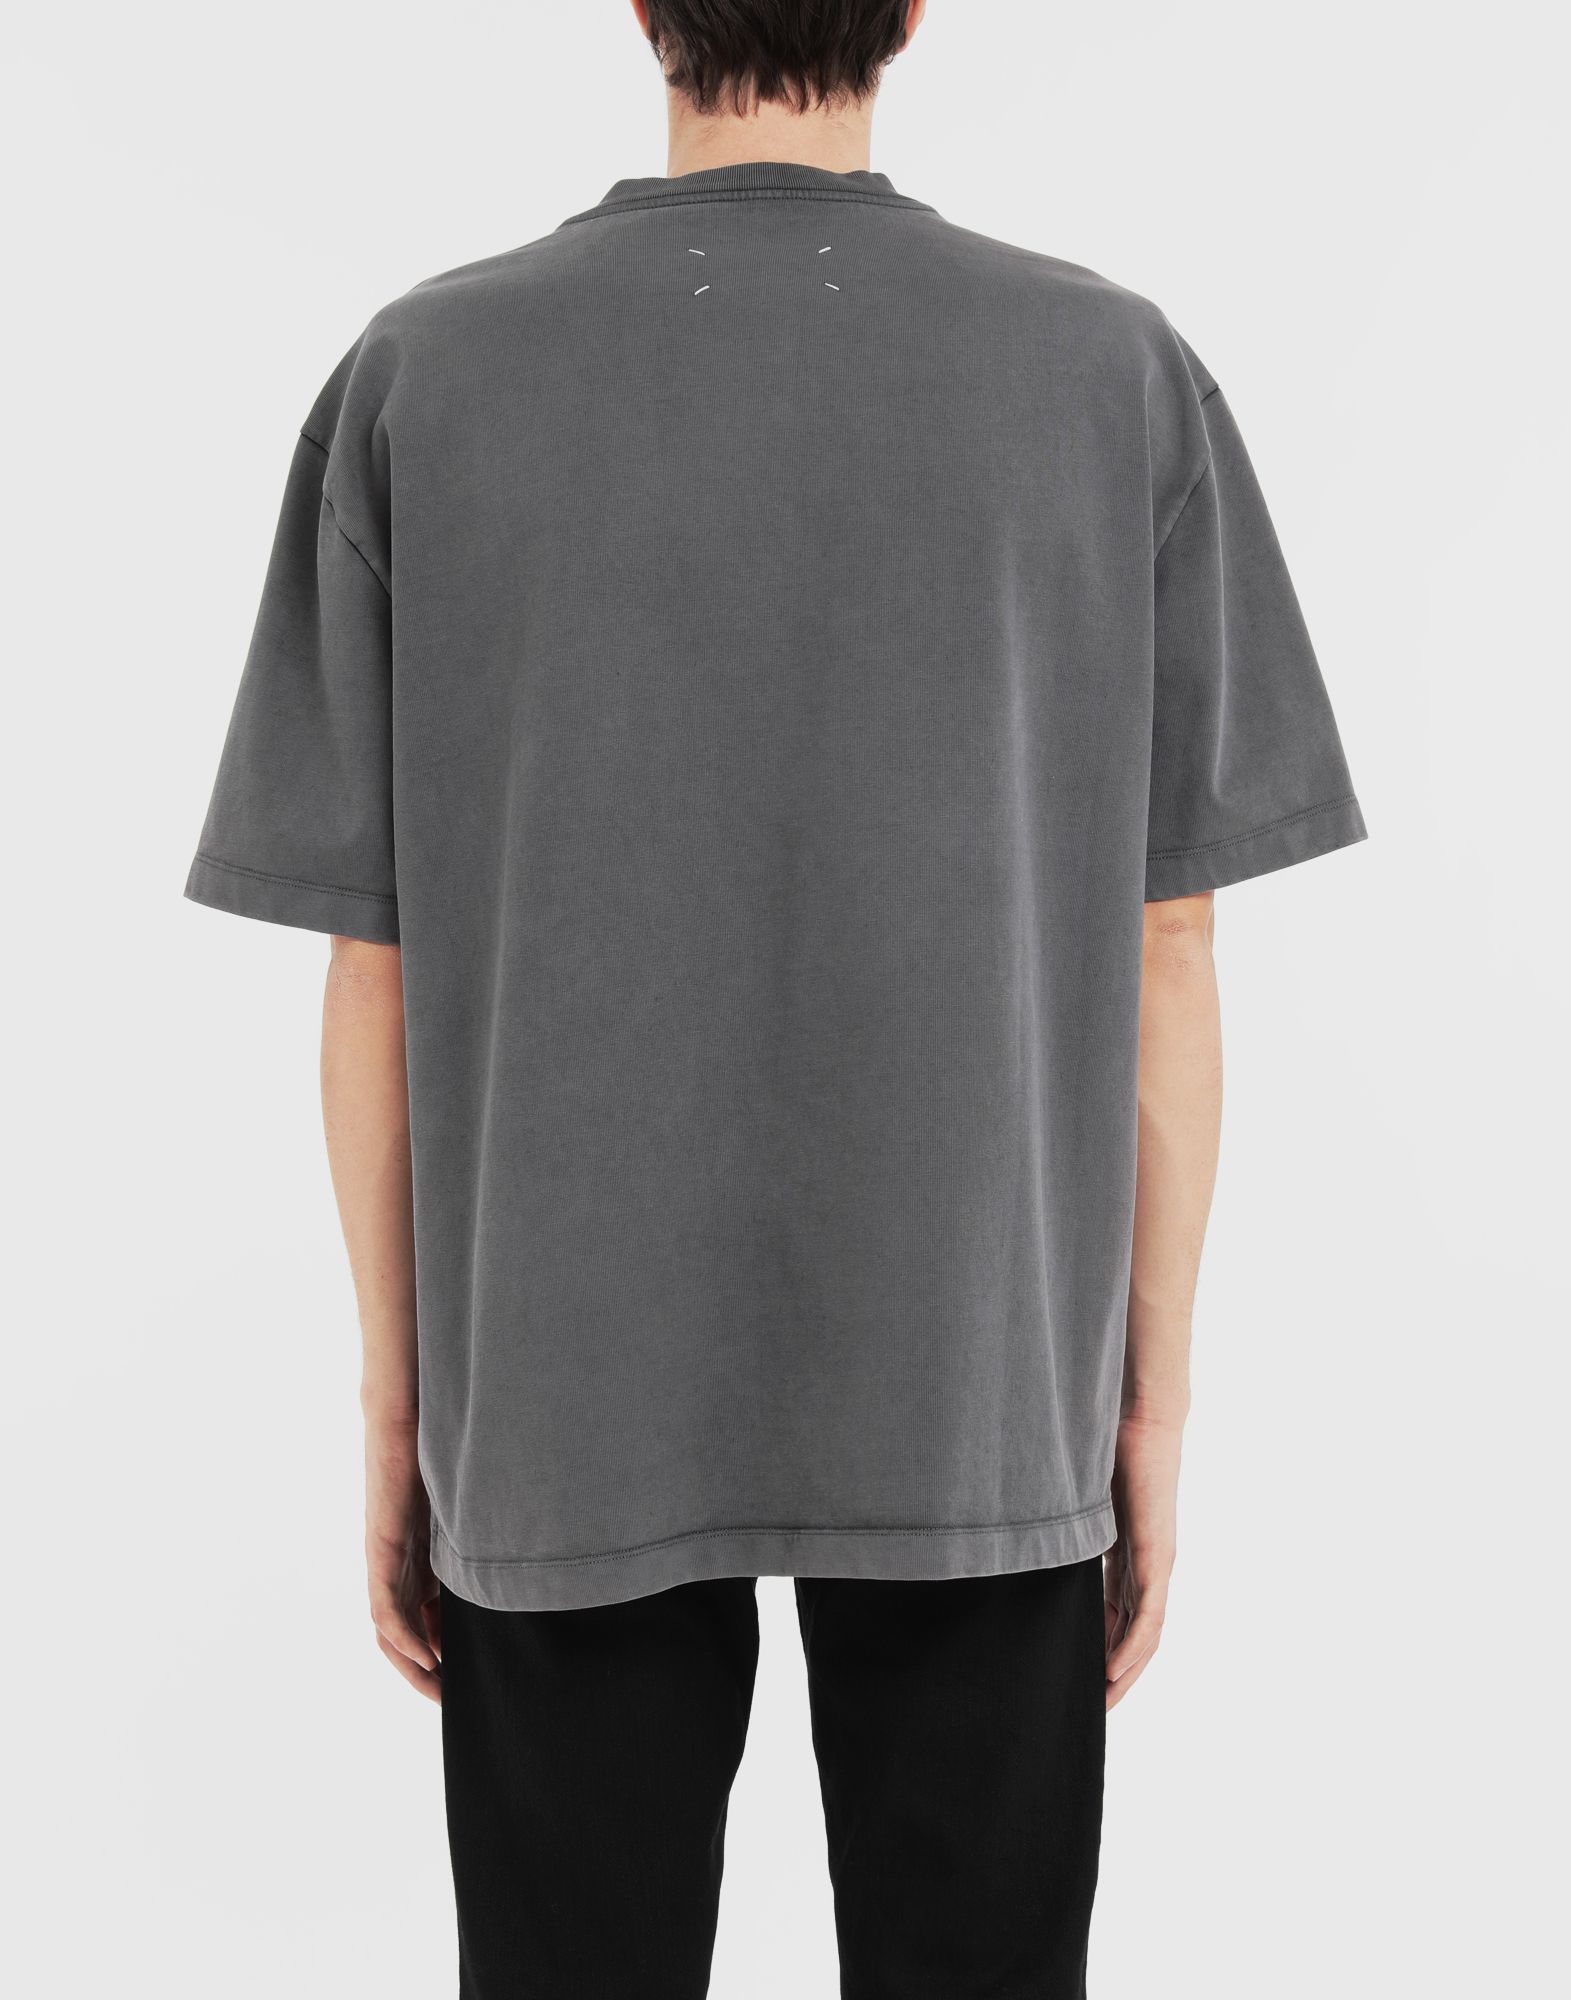 MAISON MARGIELA 'Caution' T-shirt Short sleeve t-shirt Man e